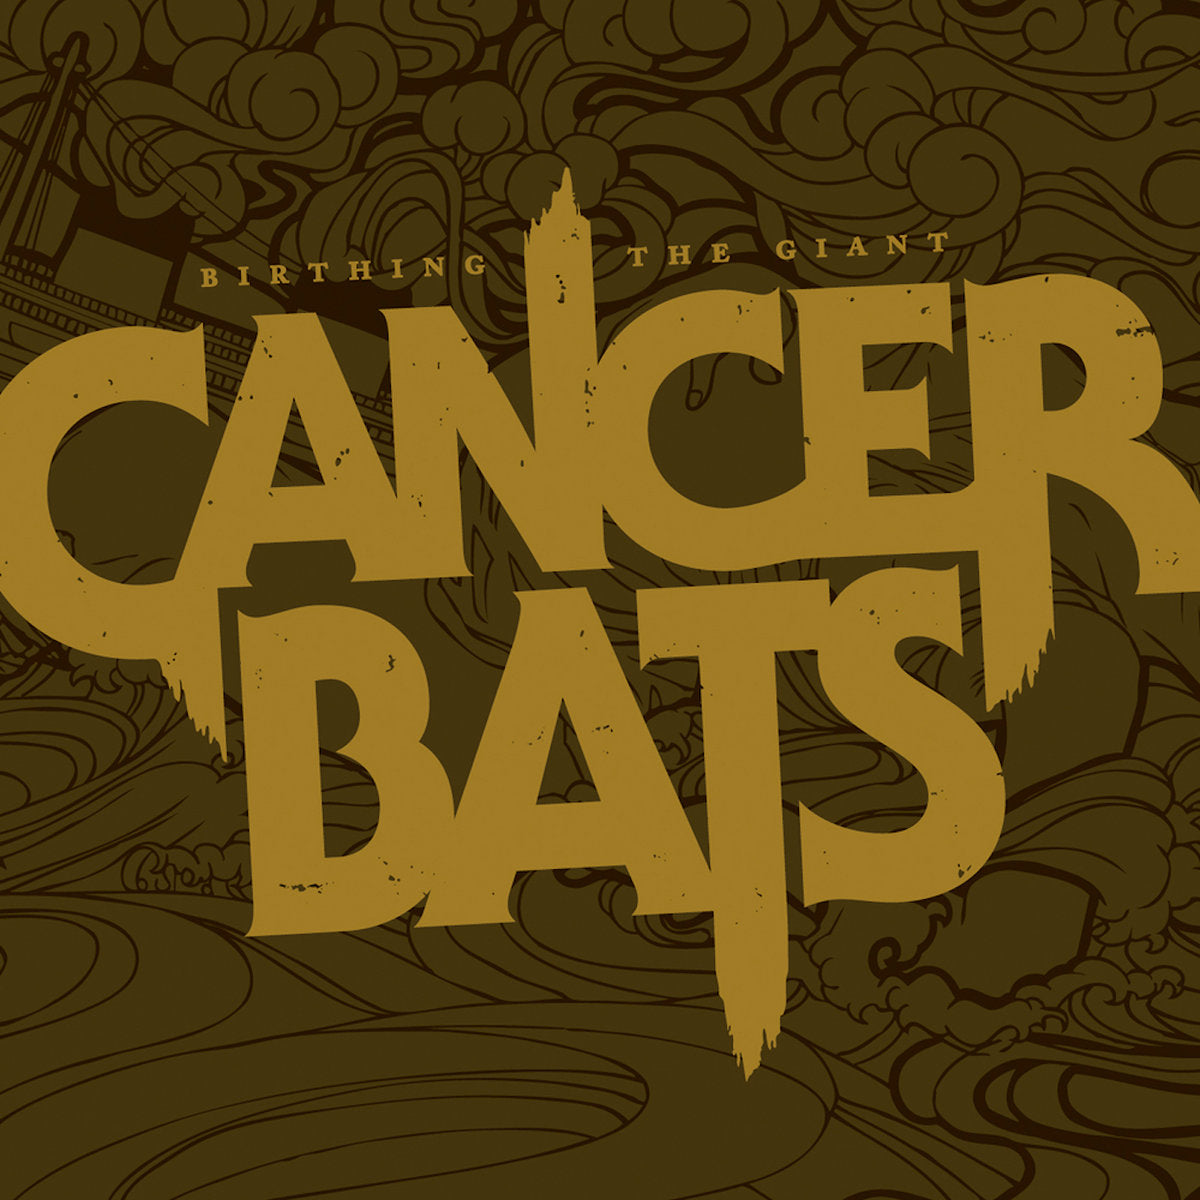 Cancer Bats - Birthing The Giant LP - Vinyl